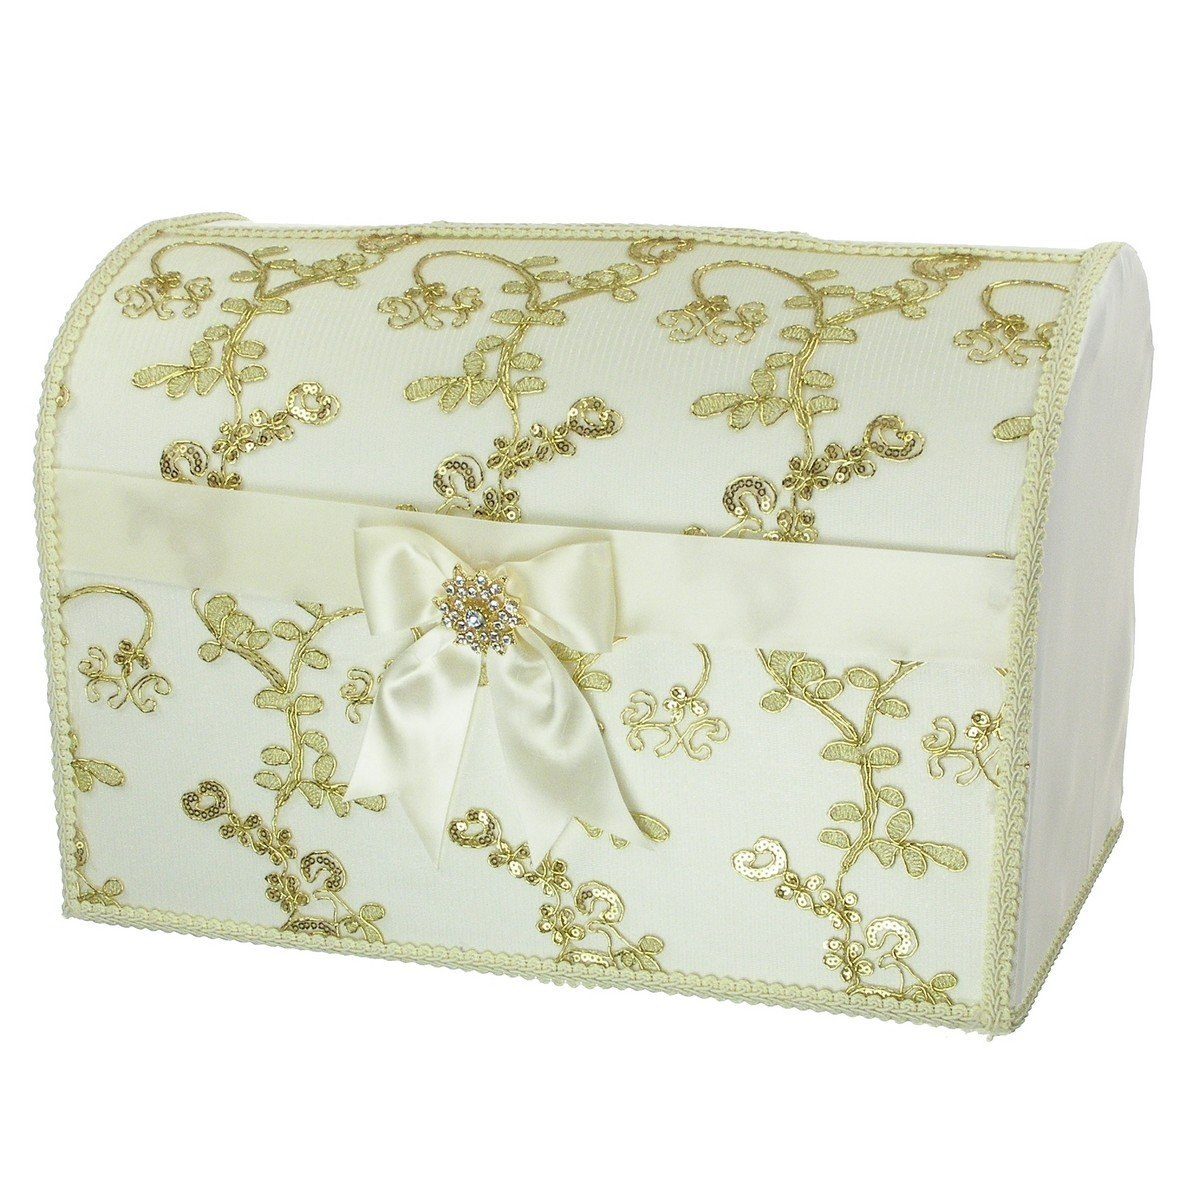 DivaDesigns Decorative Gift Card/Money Box Wedding Theme 15 x 10 x 9 - Gold Tone Embroidery Ivory Satin